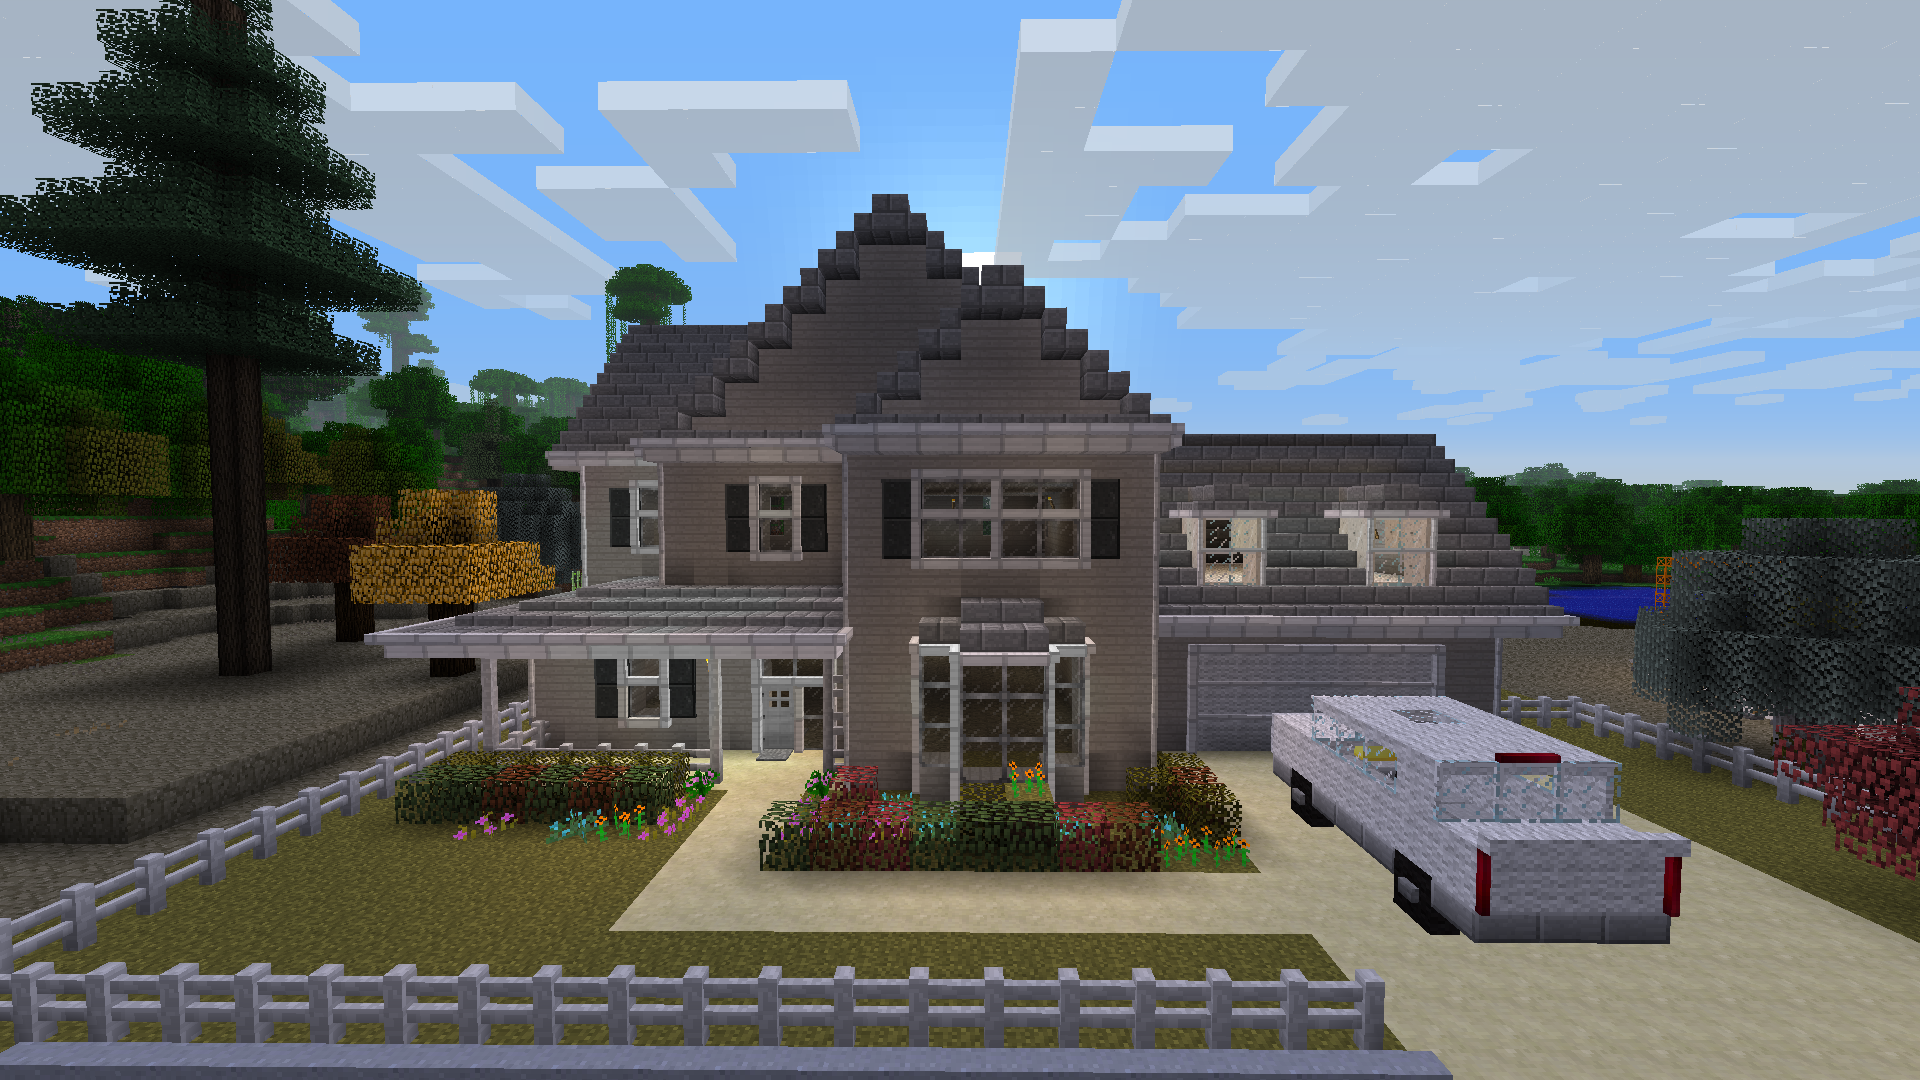 Epic minecraft house done in the style of a treehouse description from i - Minecraft house ideas ...